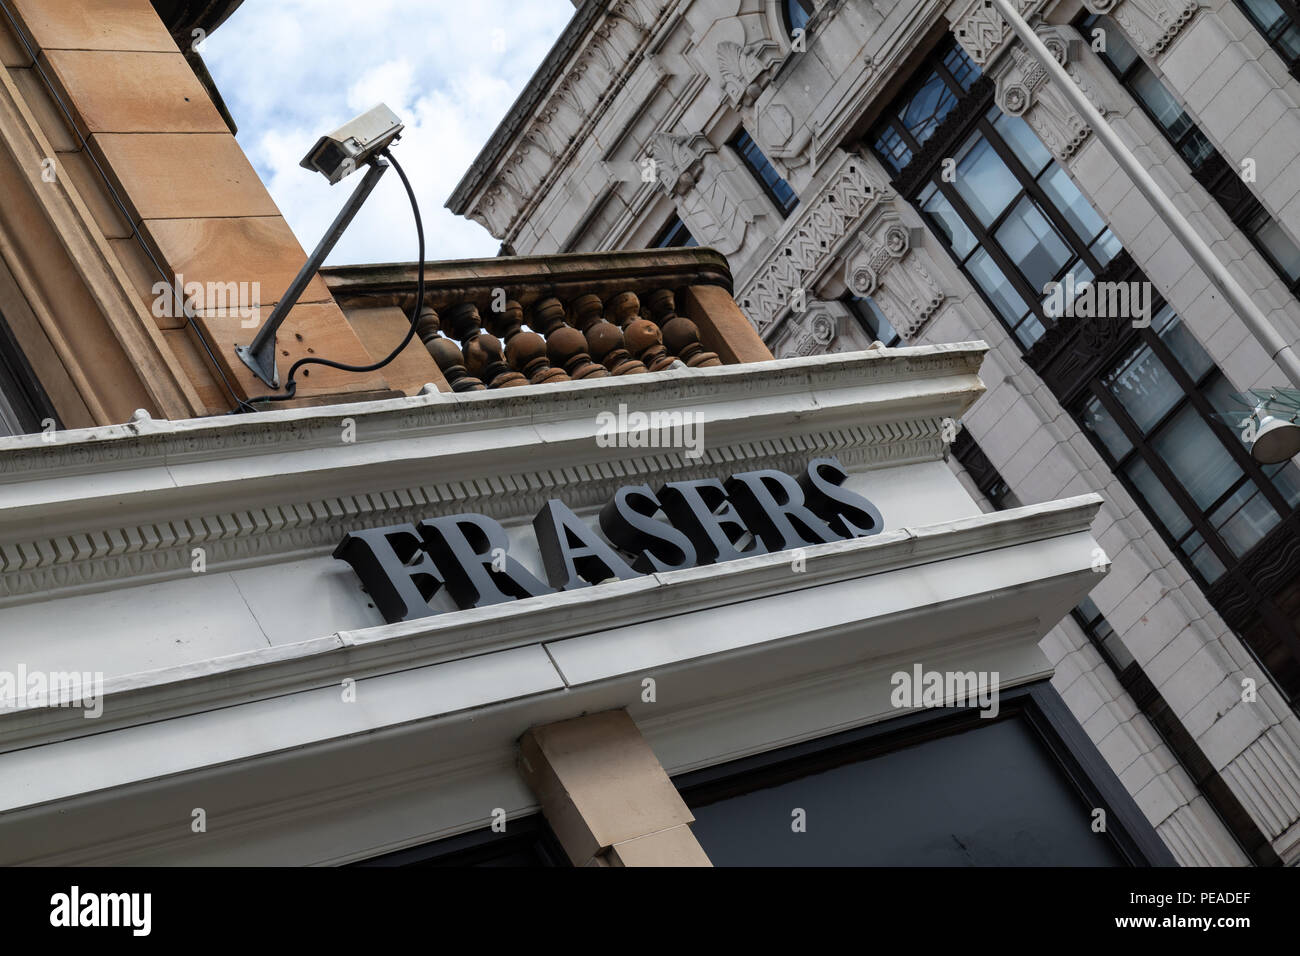 The House of Fraser department store on Buchanan Street in Glasgow city centre - Stock Image